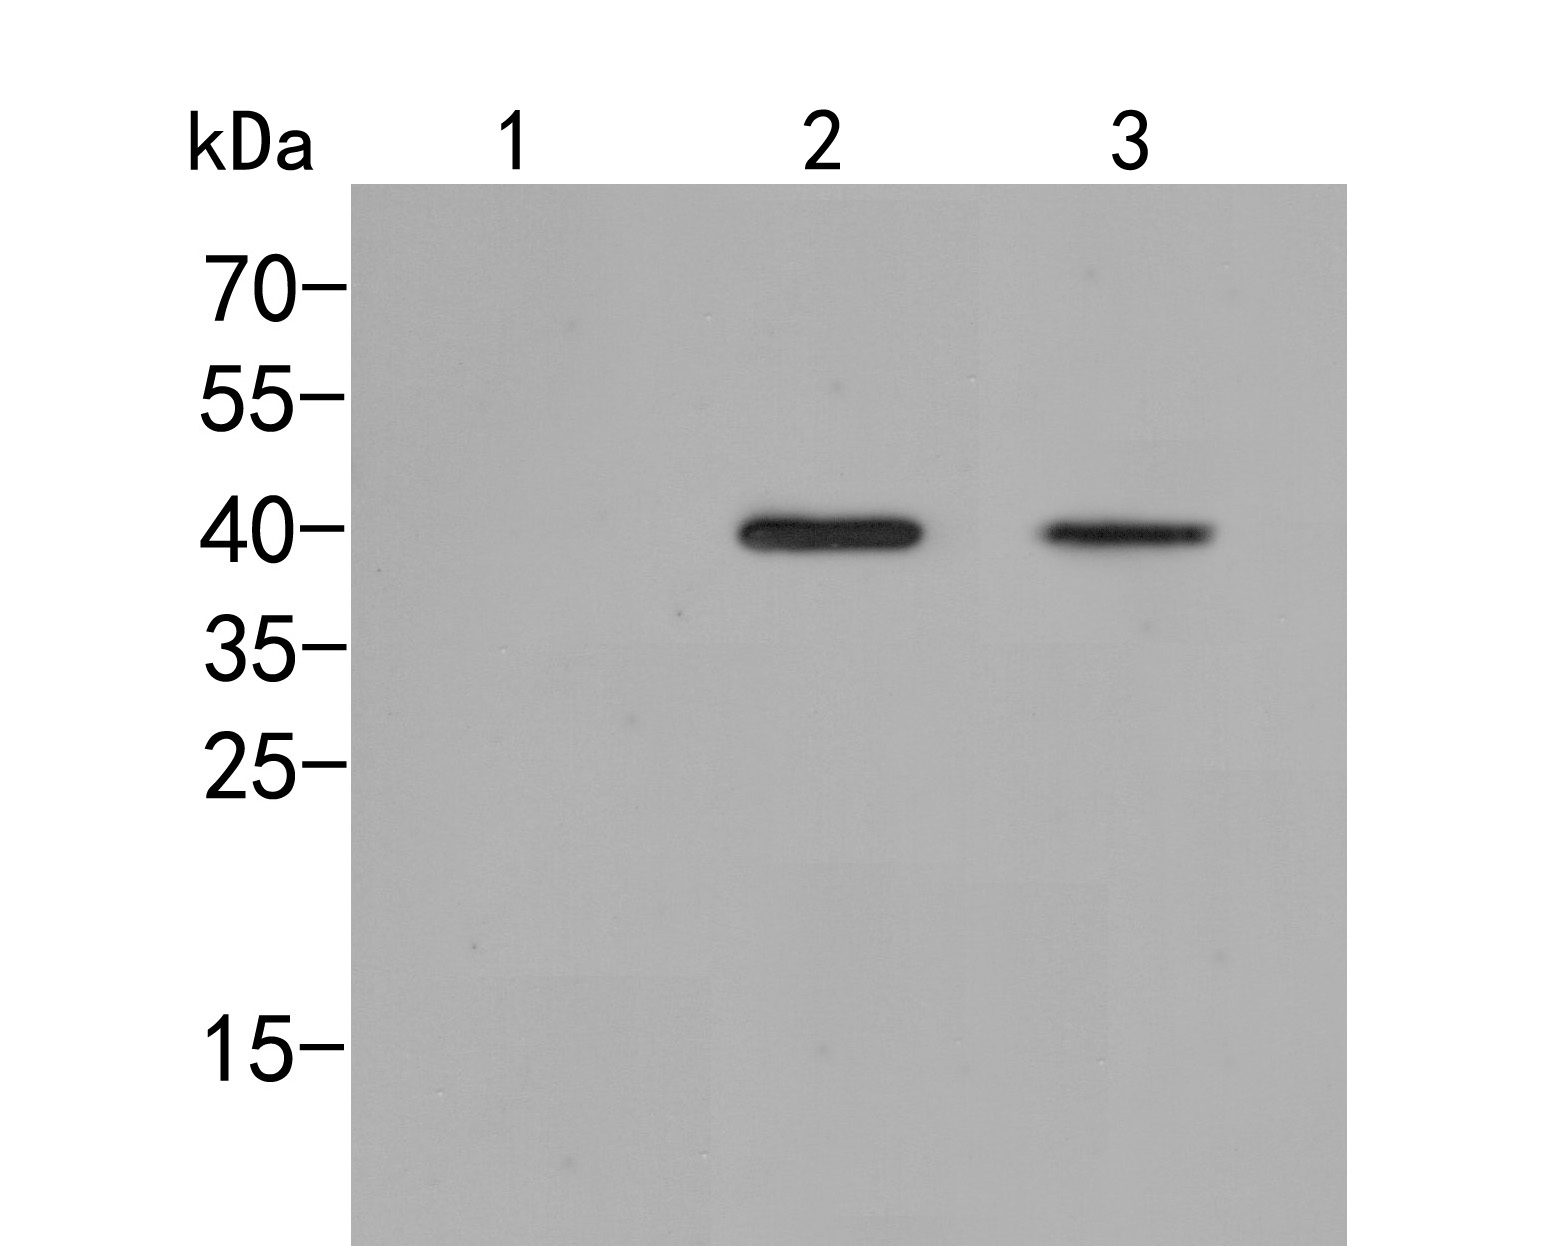 Western blot analysis of p38  (phospho T180) on different lysates. Proteins were transferred to a PVDF membrane and blocked with 5% BSA in PBS for 1 hour at room temperature. The primary antibody (ER2001-51, 1/500) was used in 5% BSA at room temperature for 2 hours. Goat Anti-Rabbit IgG - HRP Secondary Antibody (HA1001) at 1:5,000 dilution was used for 1 hour at room temperature.<br /> Positive control: <br /> Lane 1: Hela cell lysate, untreated<br /> Lane 2: Hela cell lysate, treated with anisomycin at 250 ng/ml for 30 minutes <br /> Lane 3: Hela cell lysate, treated with UV for 40 minutes